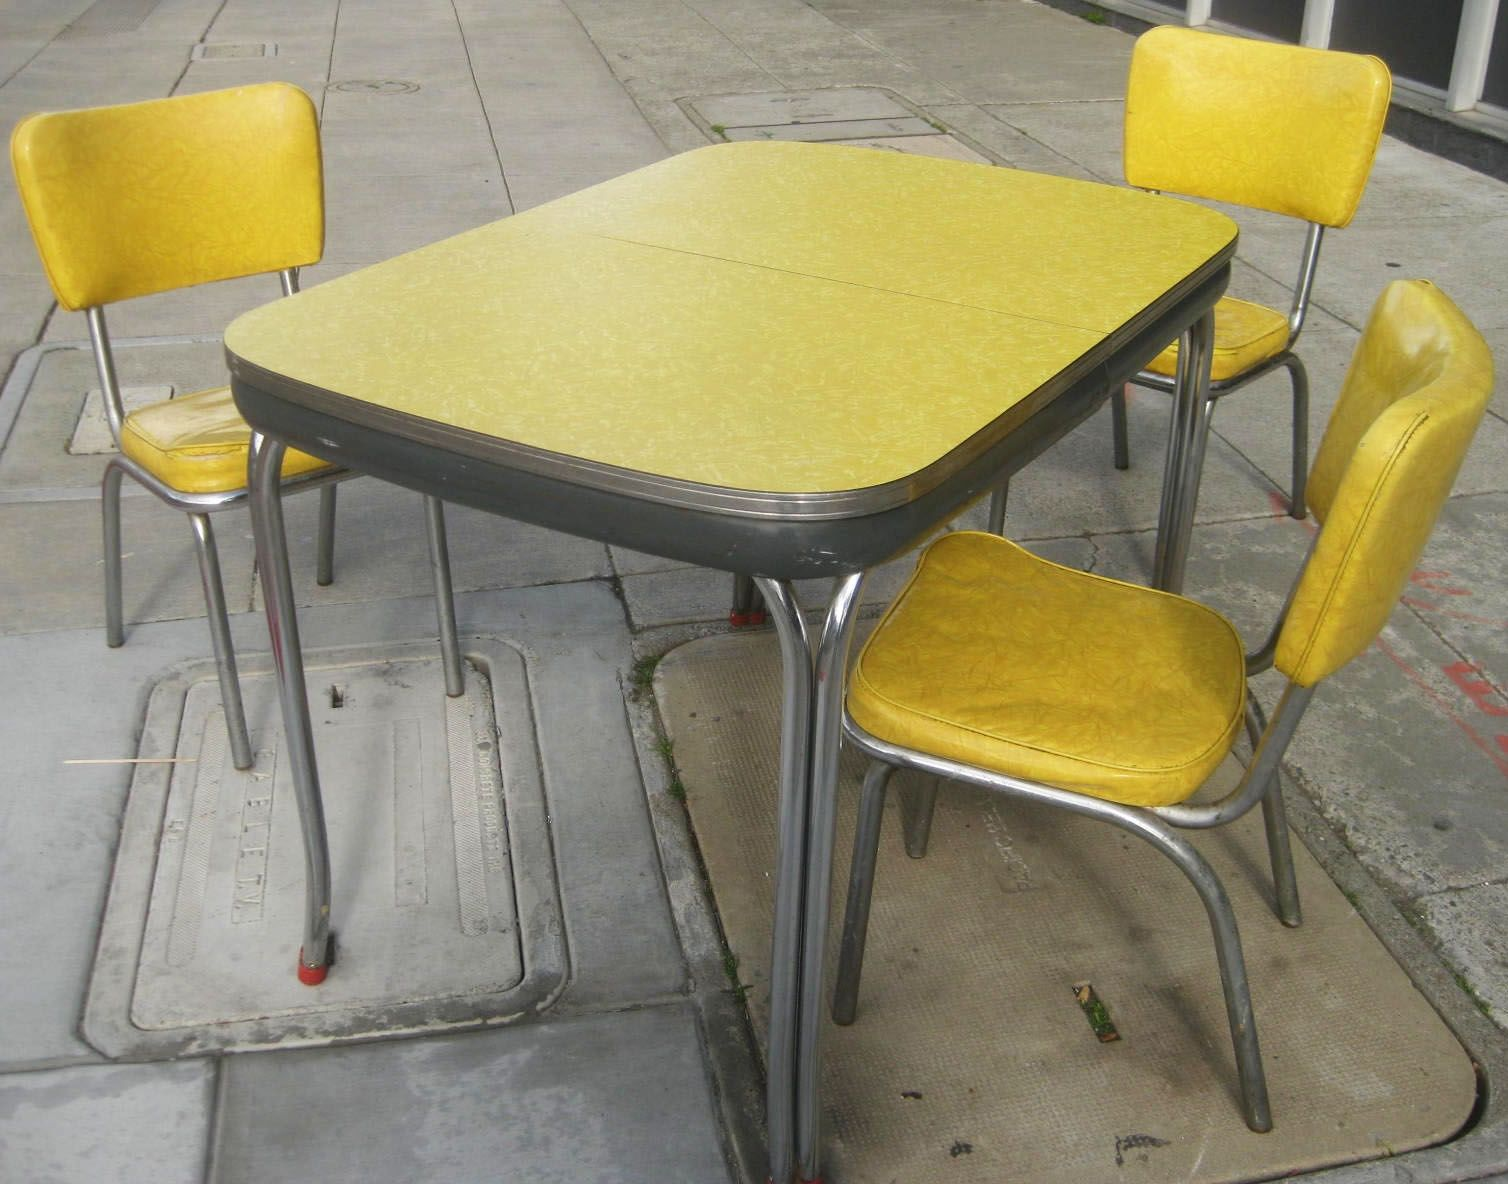 Yellow kitchen table and chairs manageditservicesatlanta